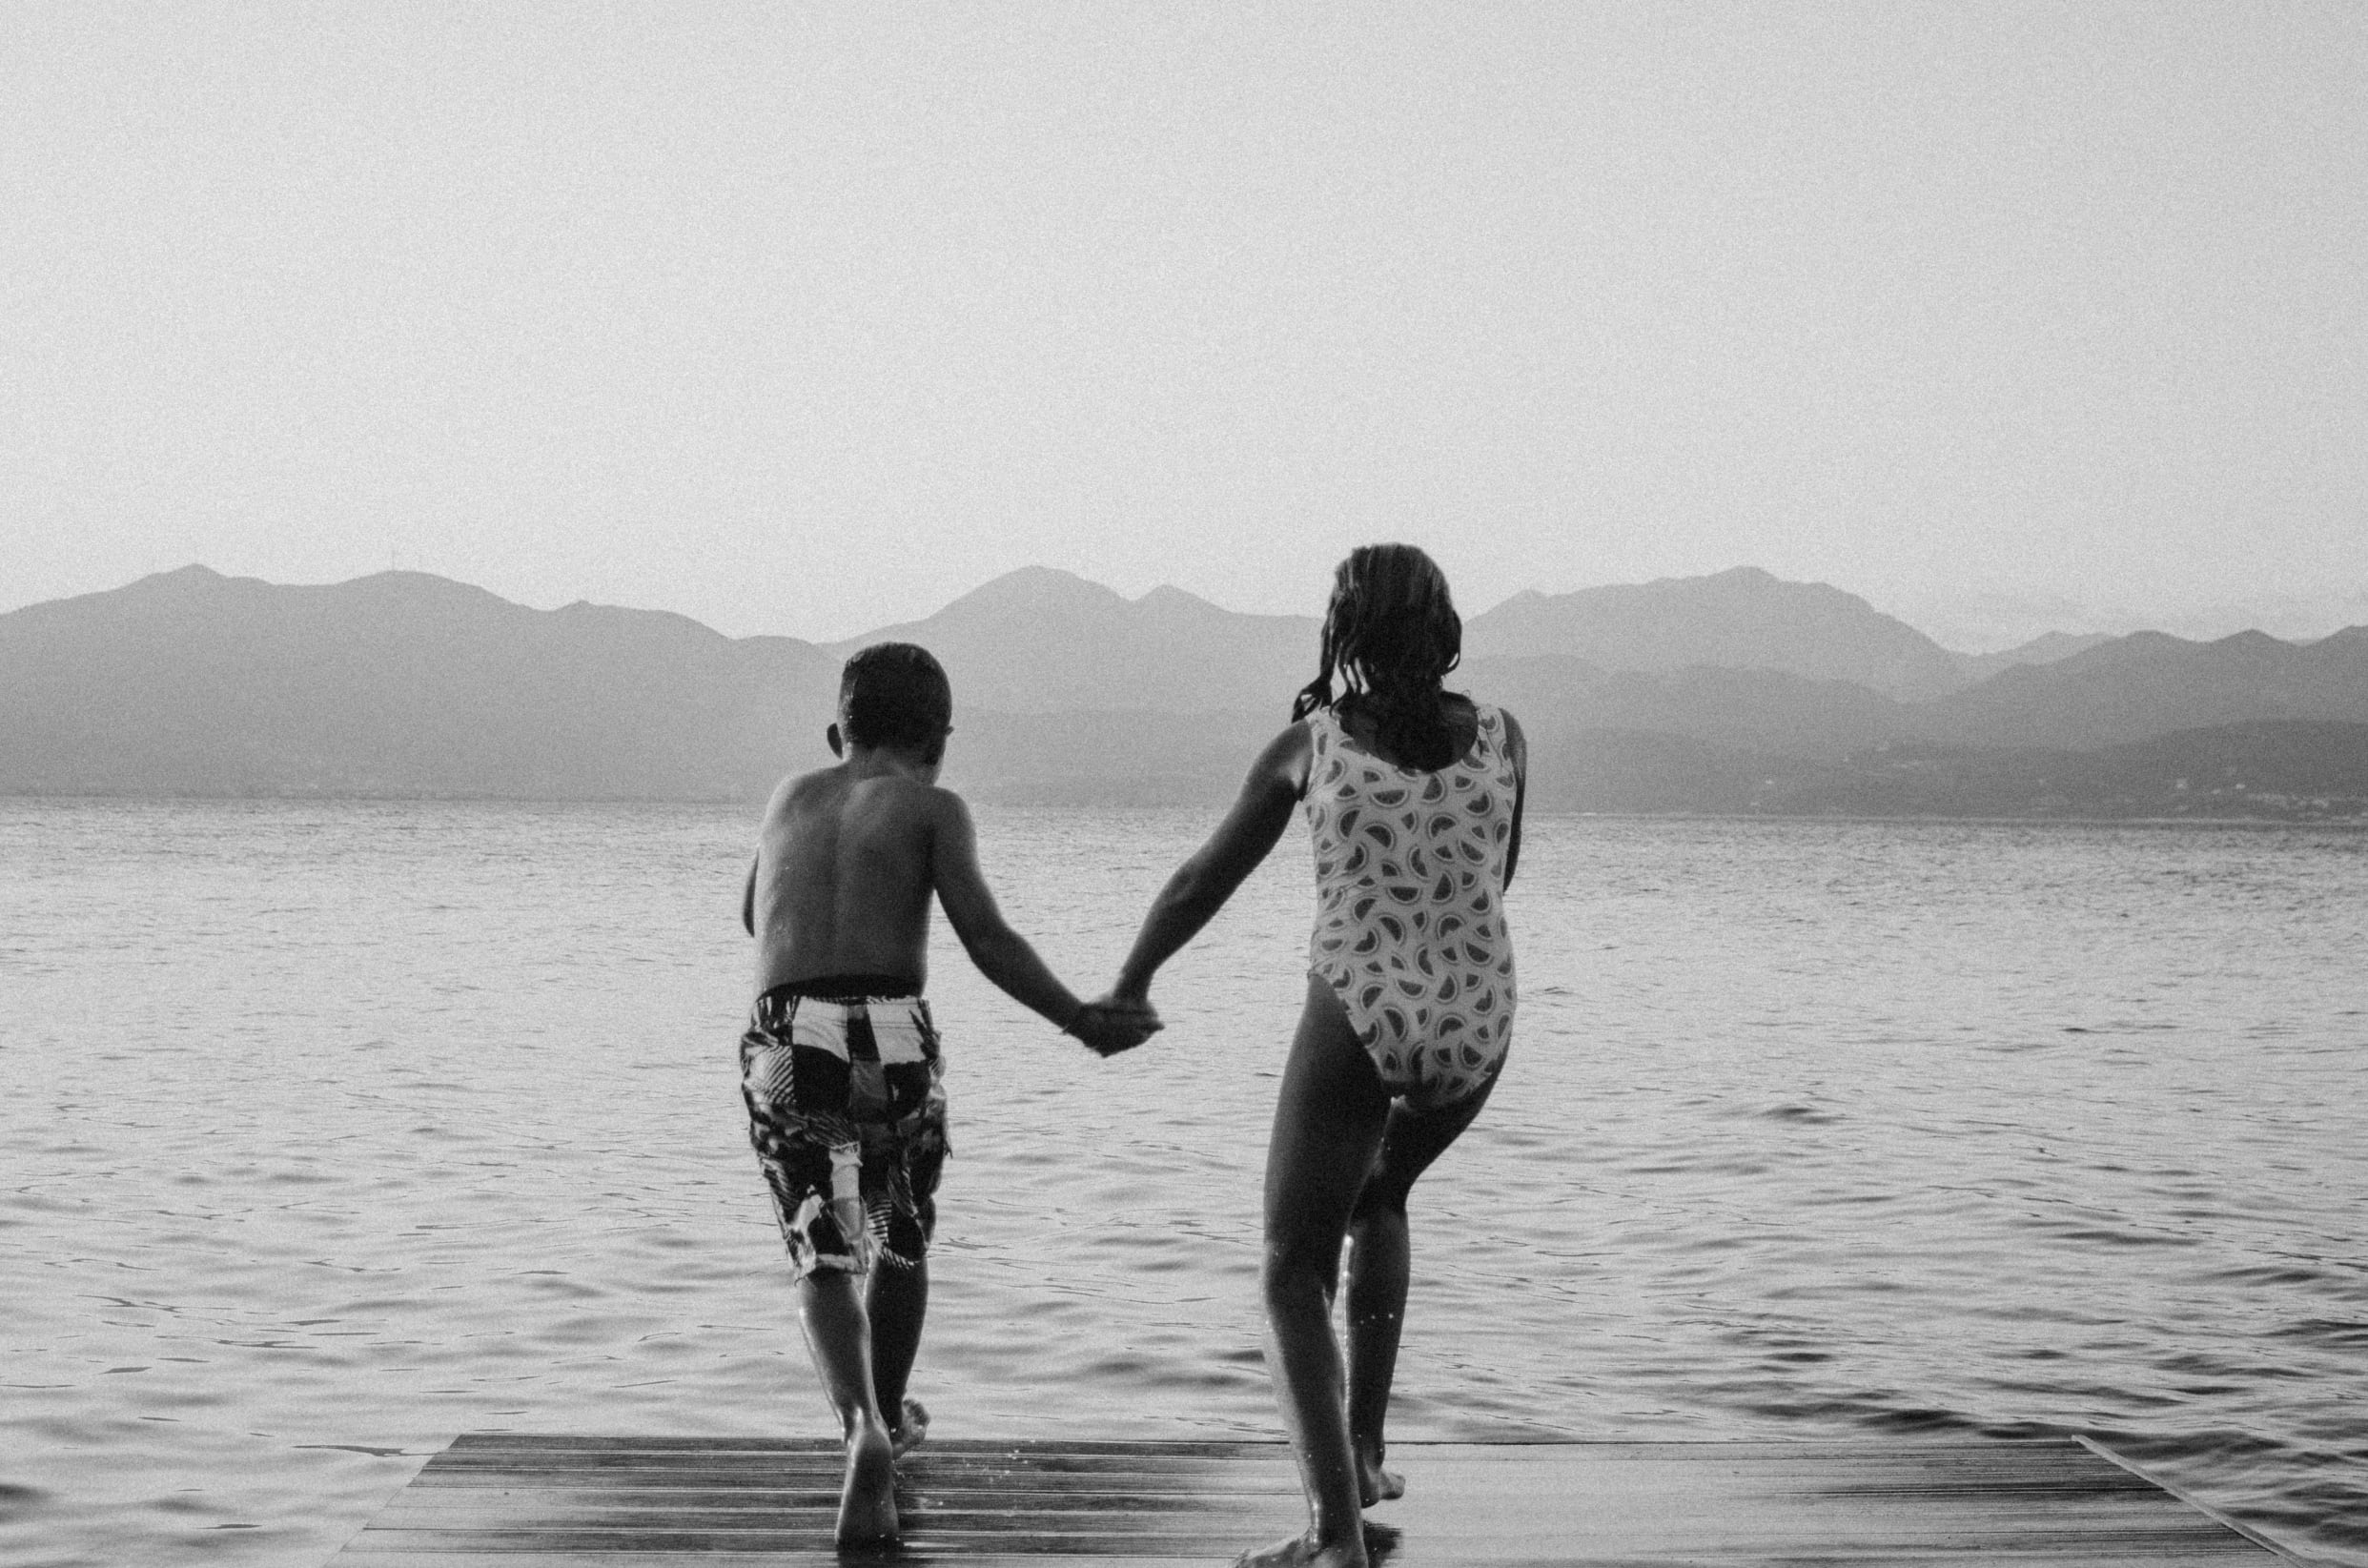 A boy and a girl hand in hand jumping into the water. Image by Constantinos Panagopoulos.